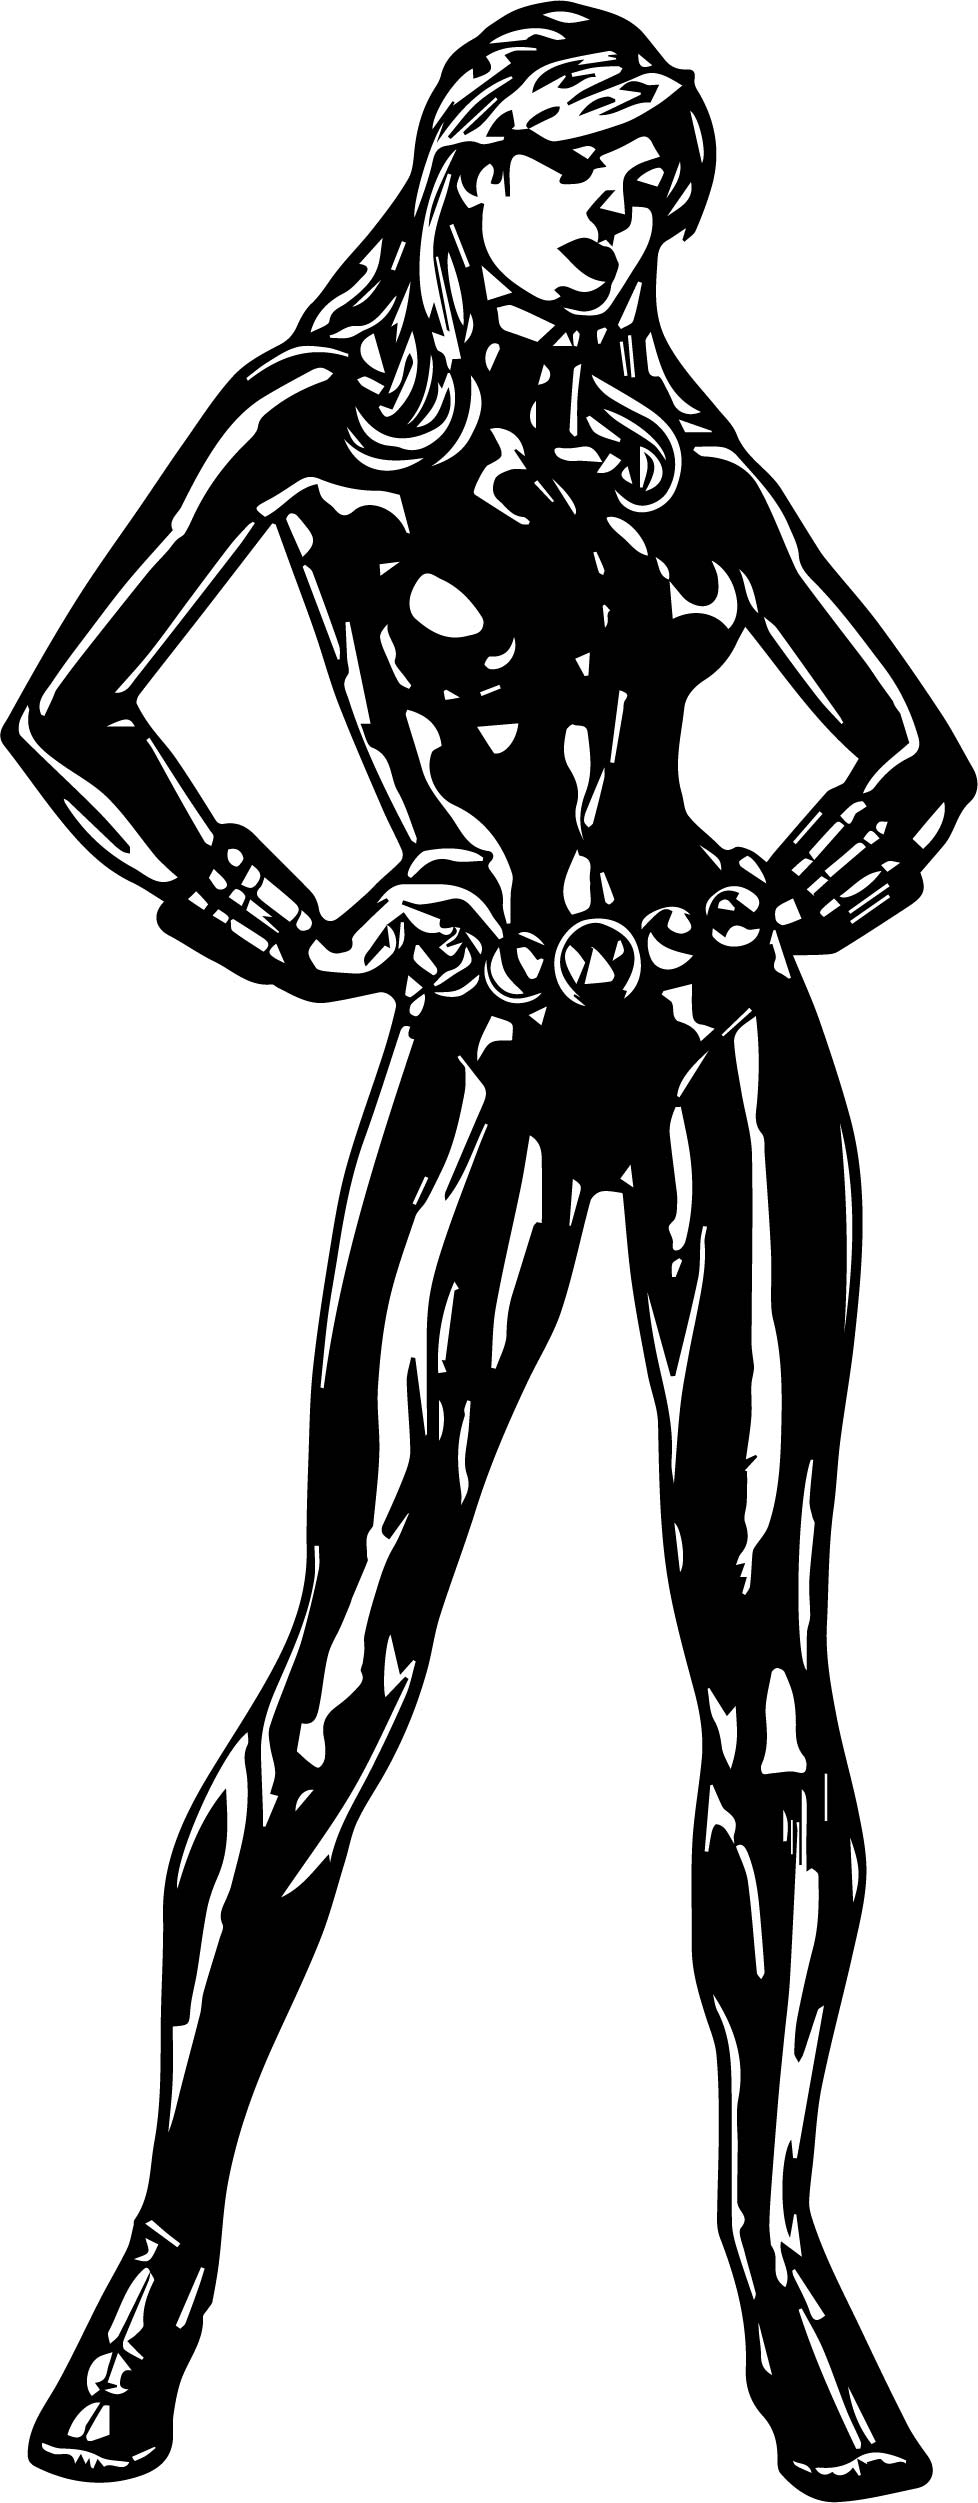 Black Widow Avengers Assemble Coloring Page